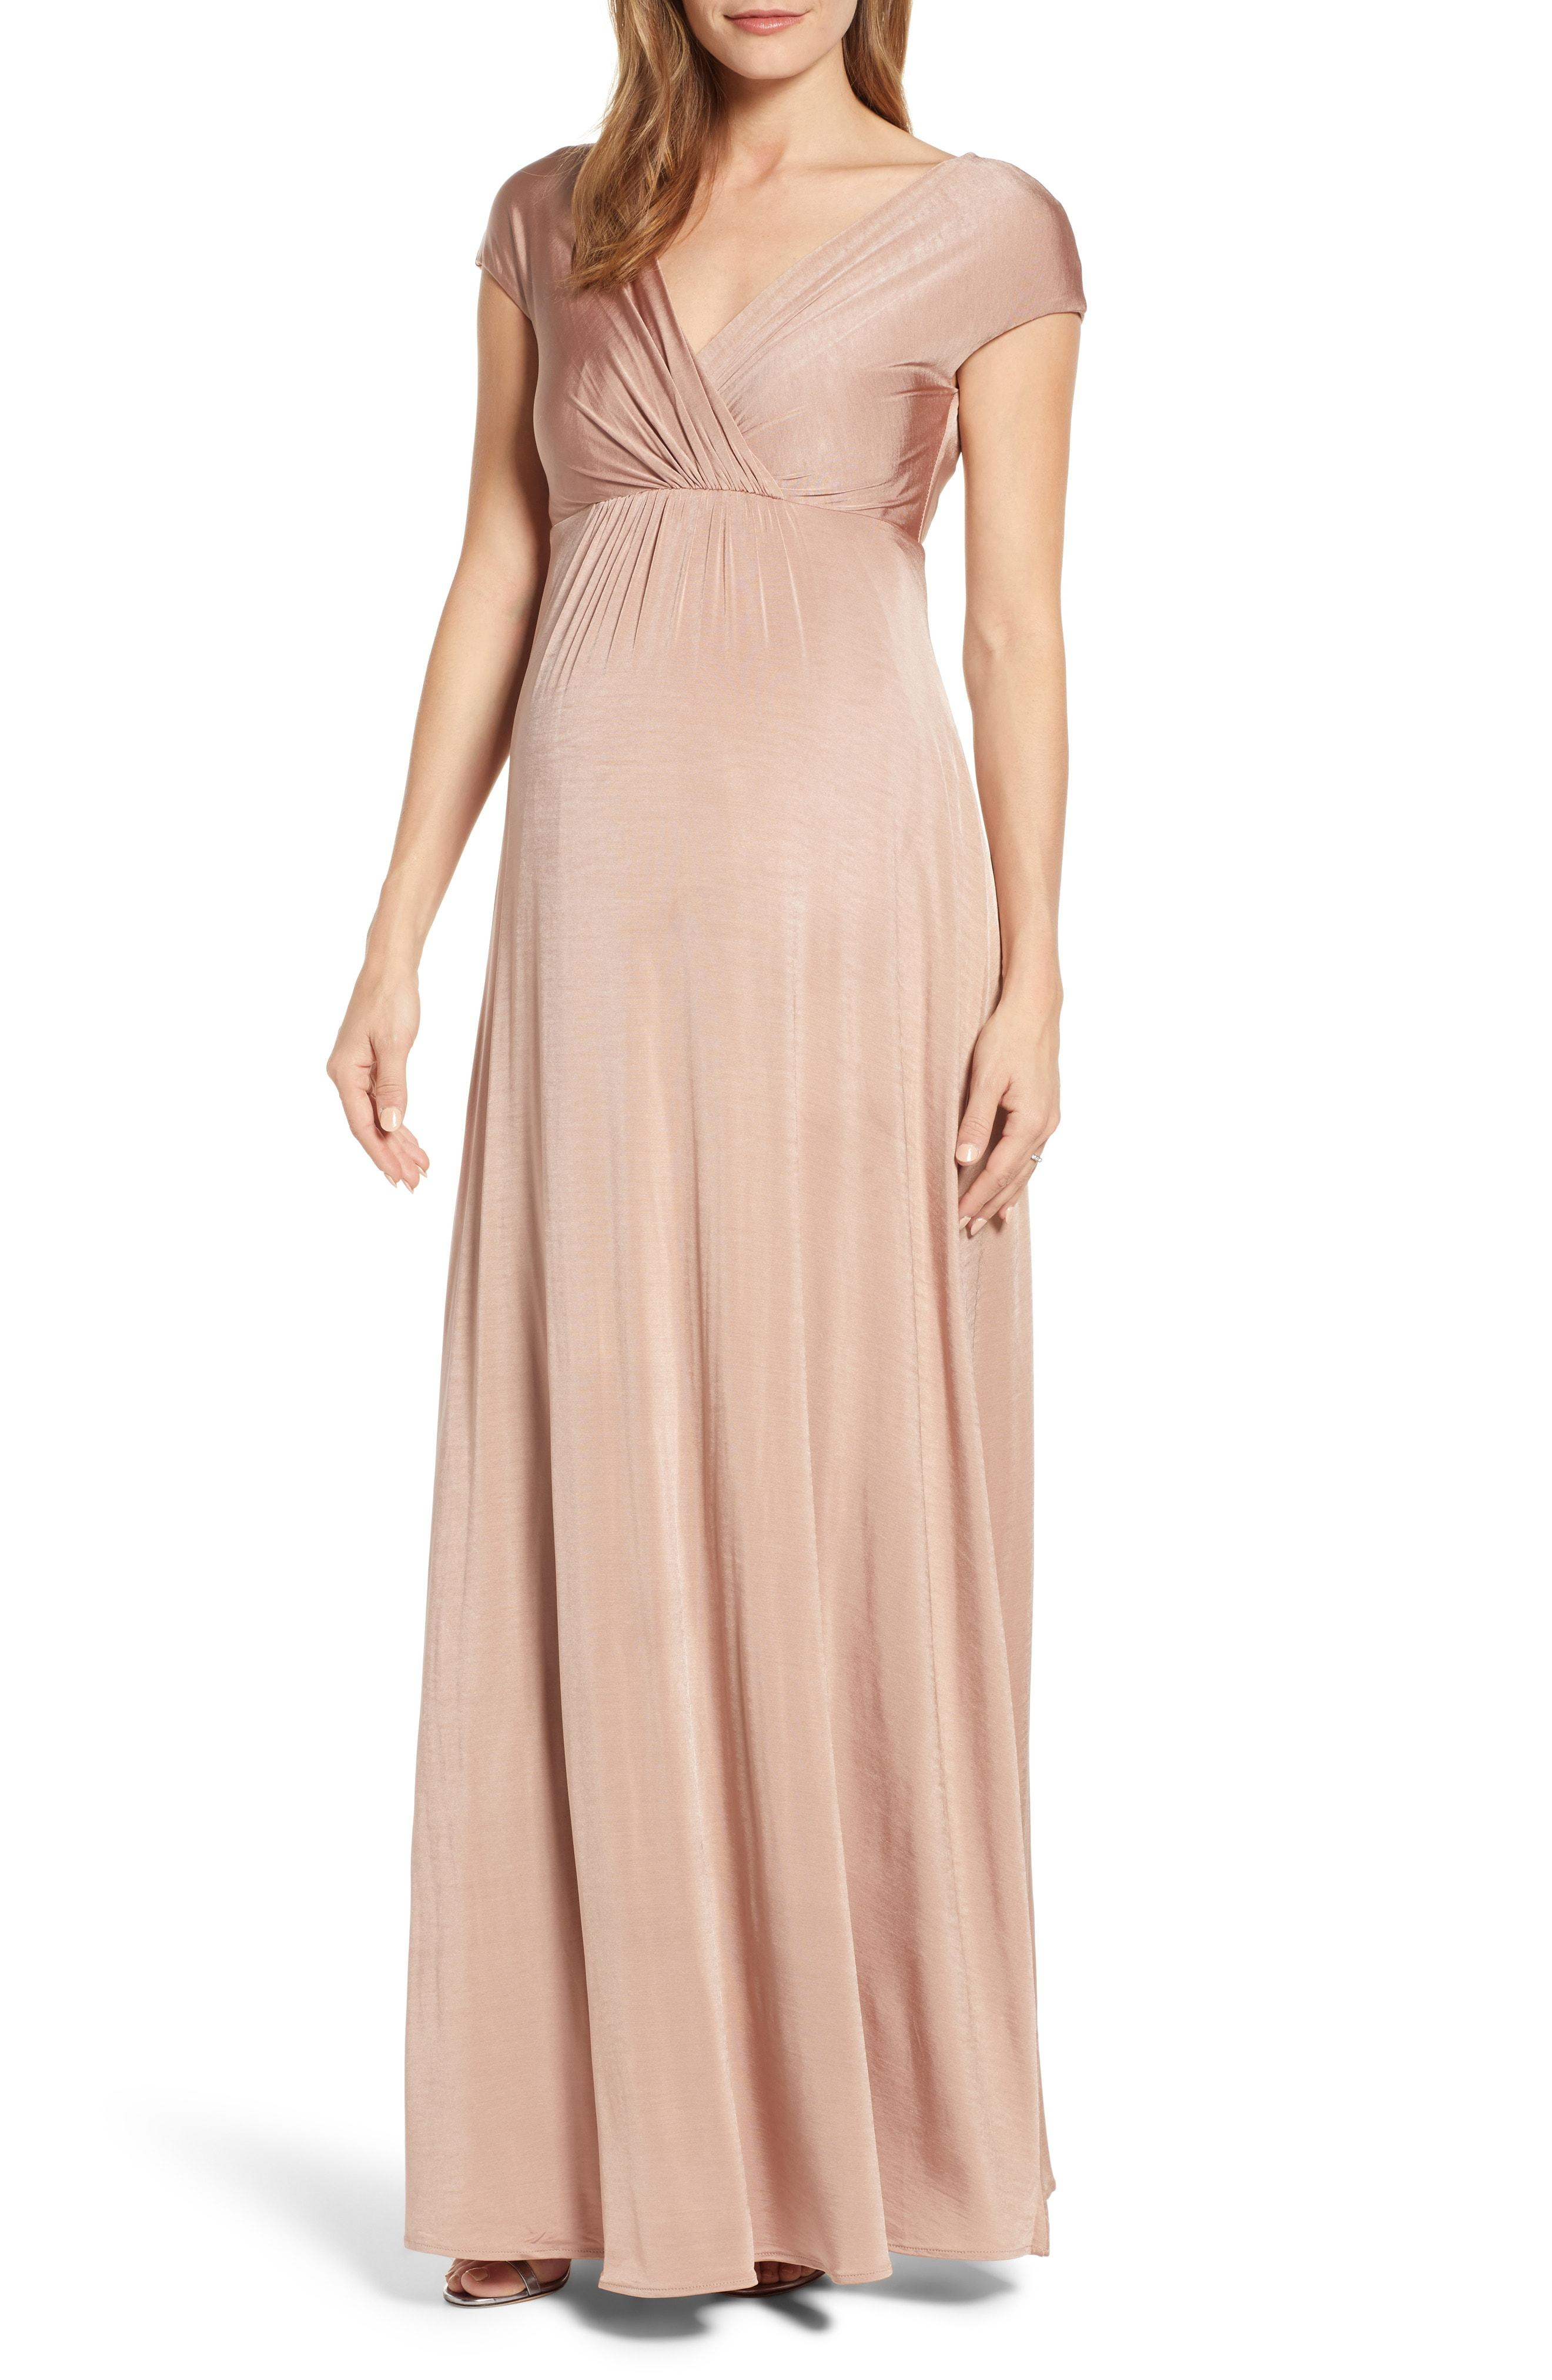 0ef3dba4884 Lyst - TIFFANY ROSE Francesca Maternity nursing Maxi Dress in Pink